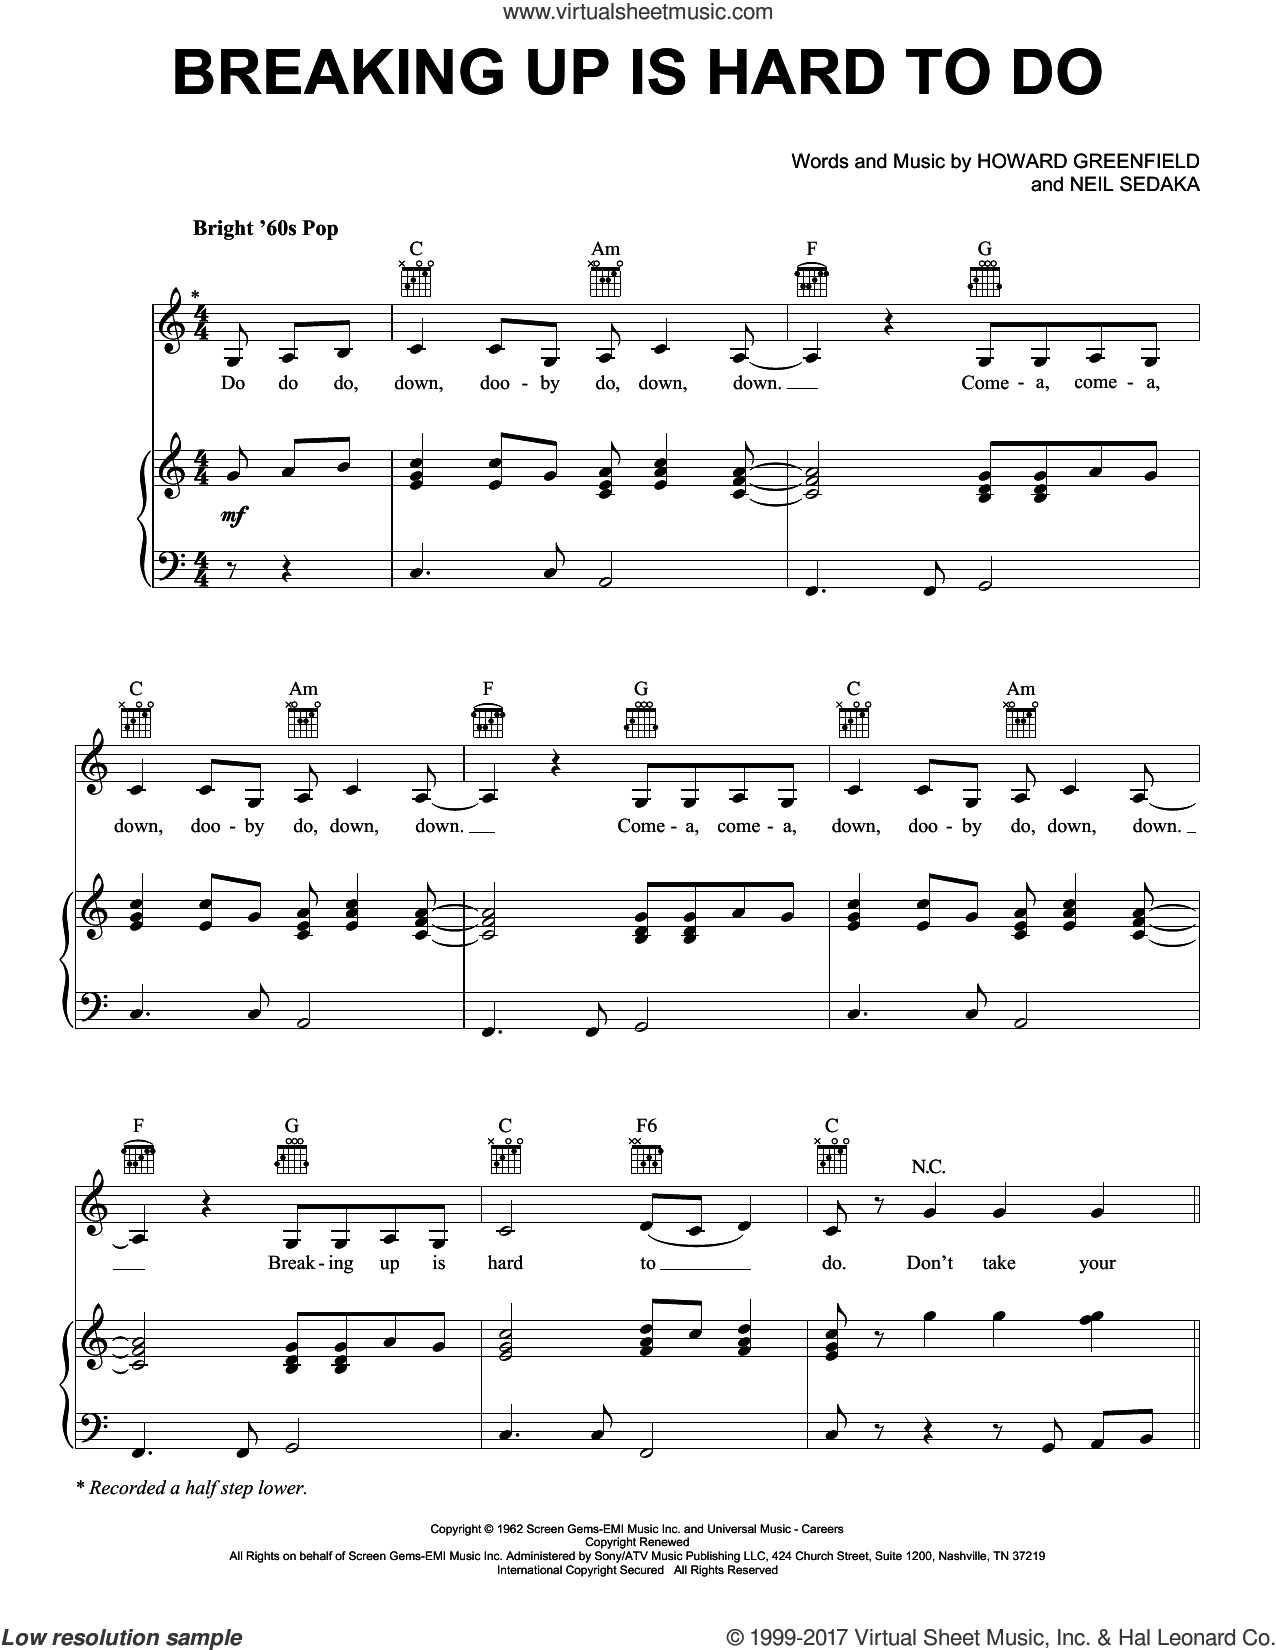 Breaking Up Is Hard To Do sheet music for voice, piano or guitar by Neil Sedaka, Partridge Family and Howard Greenfield, intermediate skill level